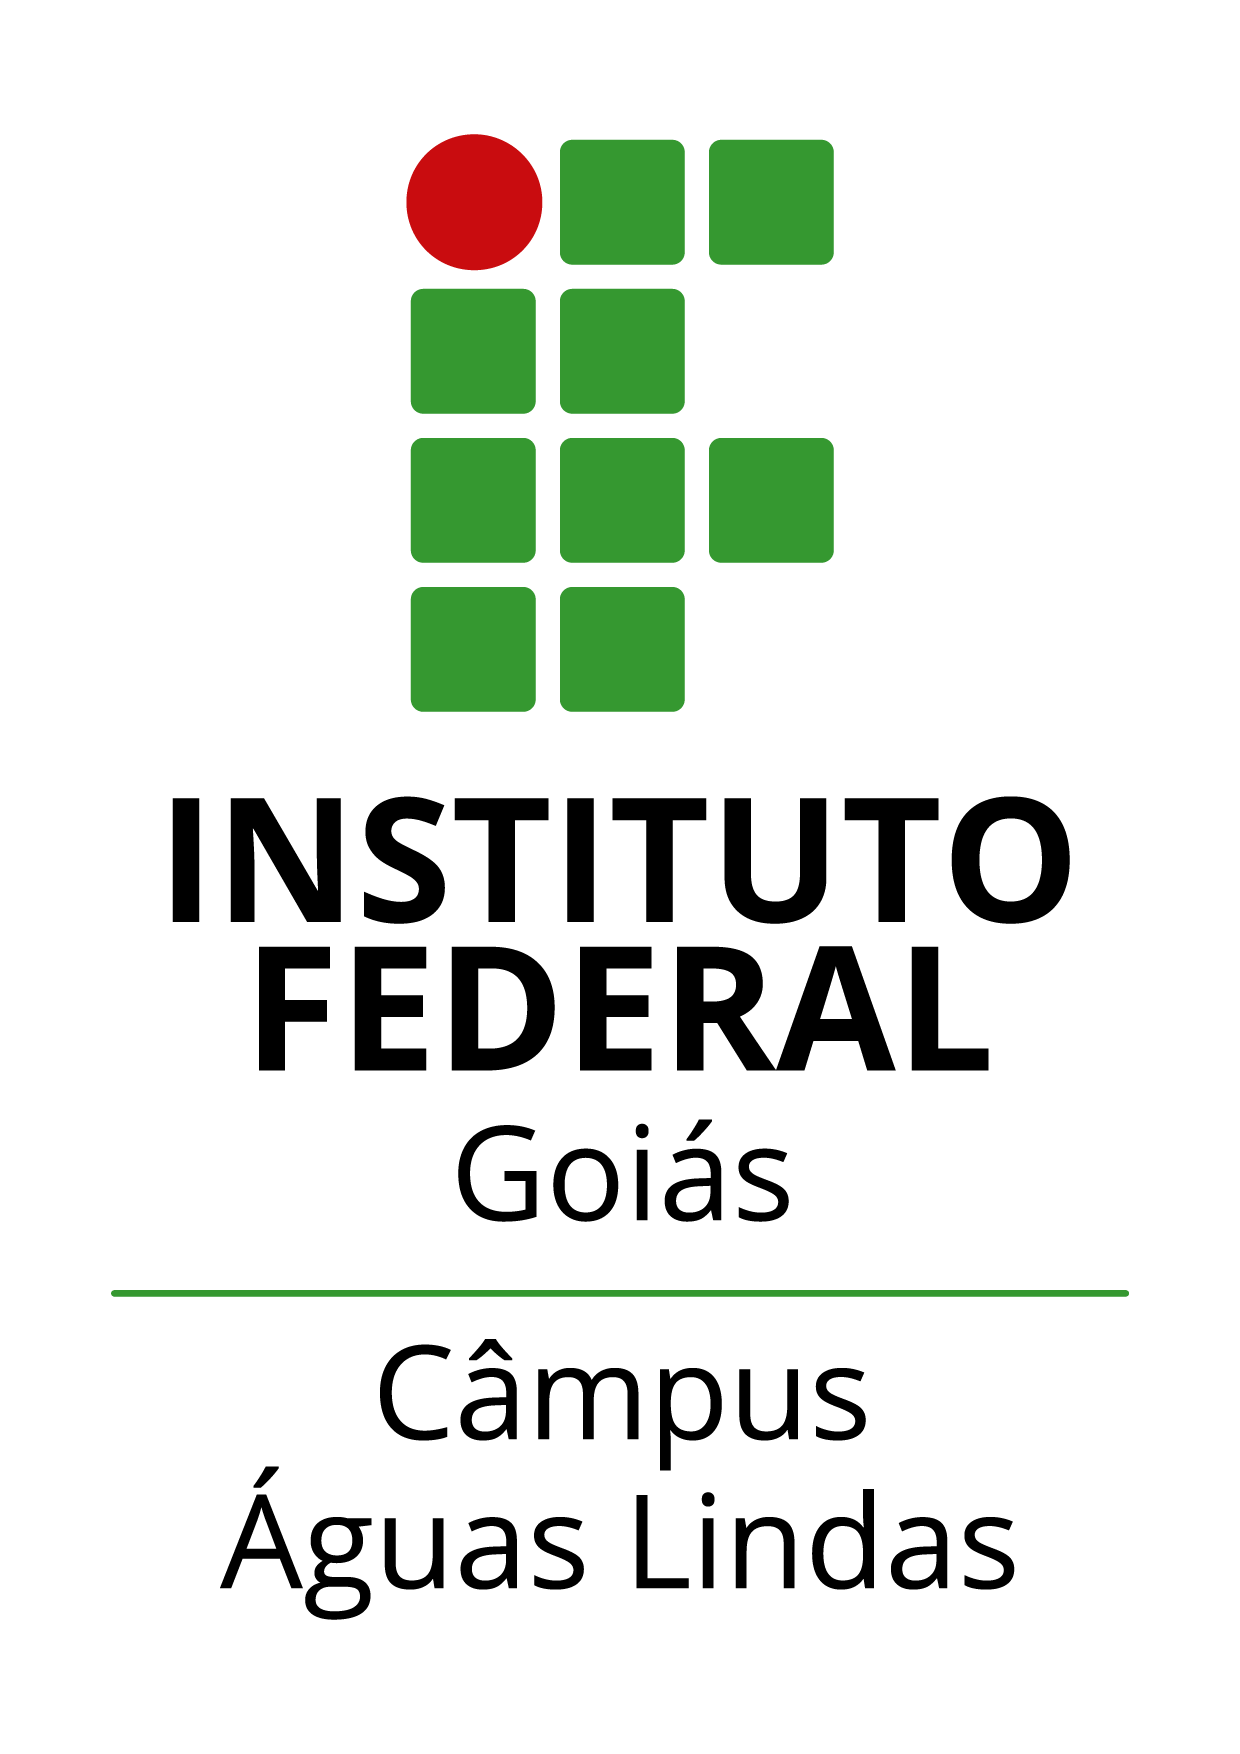 Logo do IFG - Câmpus Águas Lindas